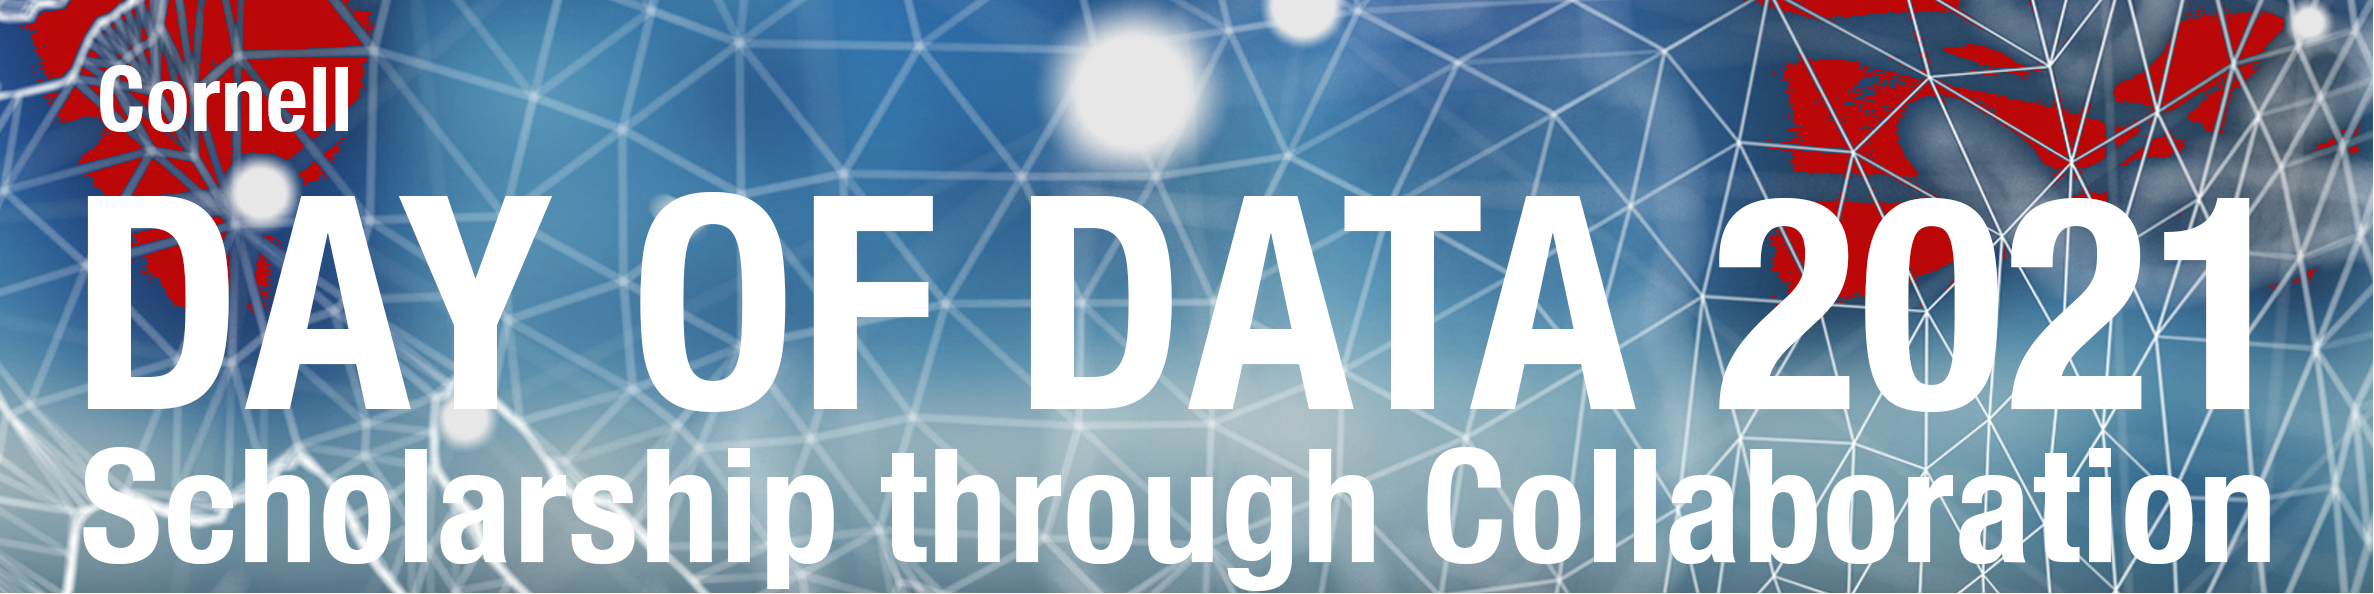 Day of Data 2020 Scholarship Through Collaboration